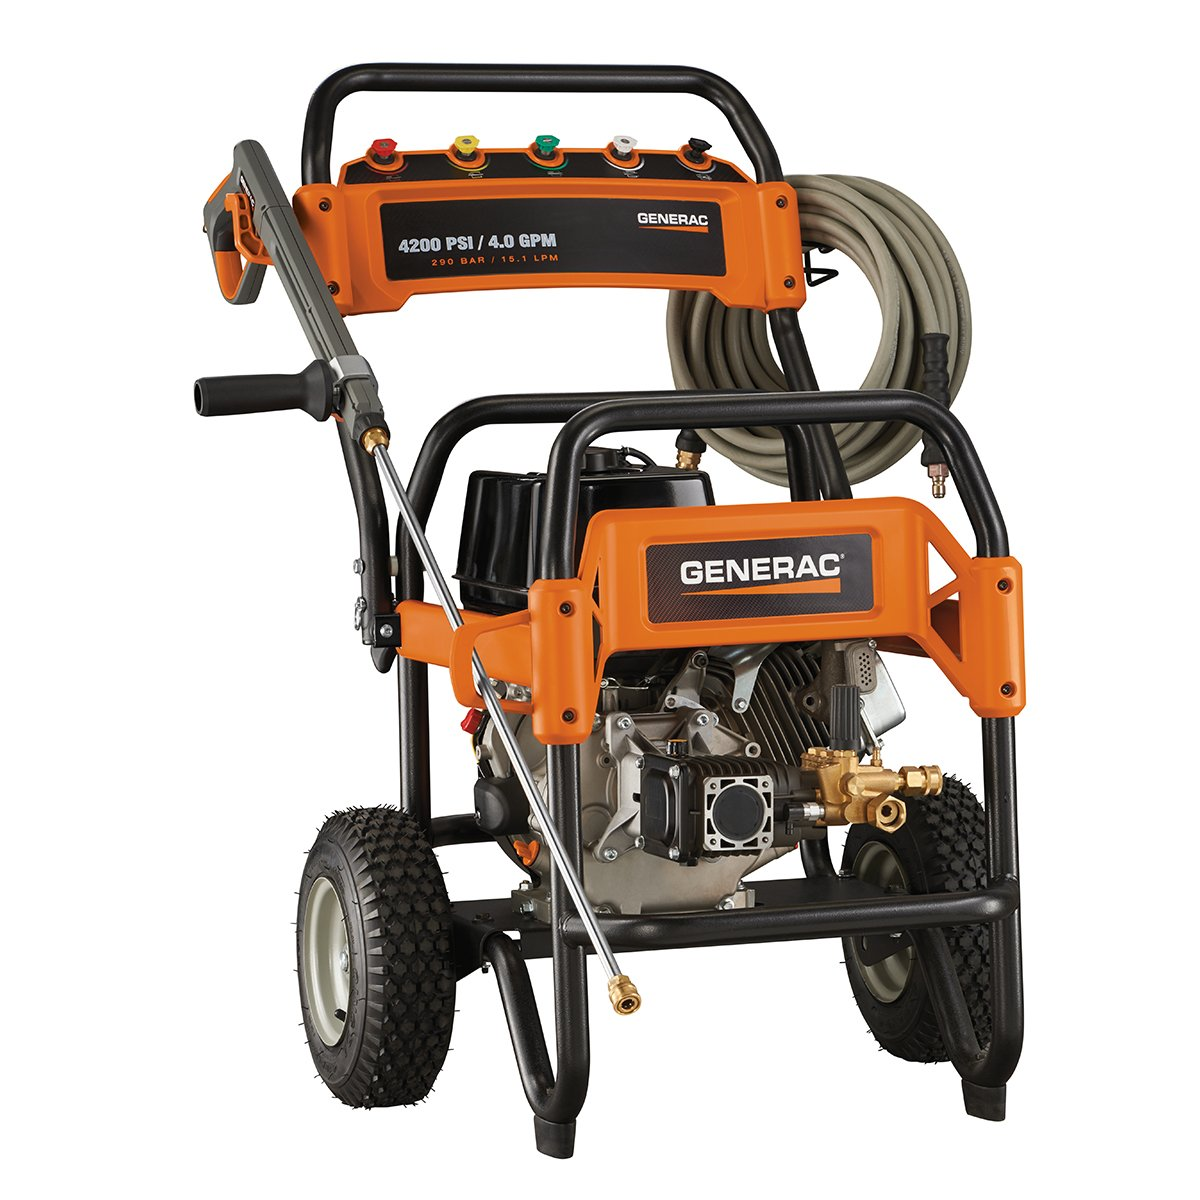 Amazon.com : Generac 6565 4, 200 PSI 4.0 GPM 420cc OHV Gas Powered  Commercial Pressure Washer : Garden & Outdoor